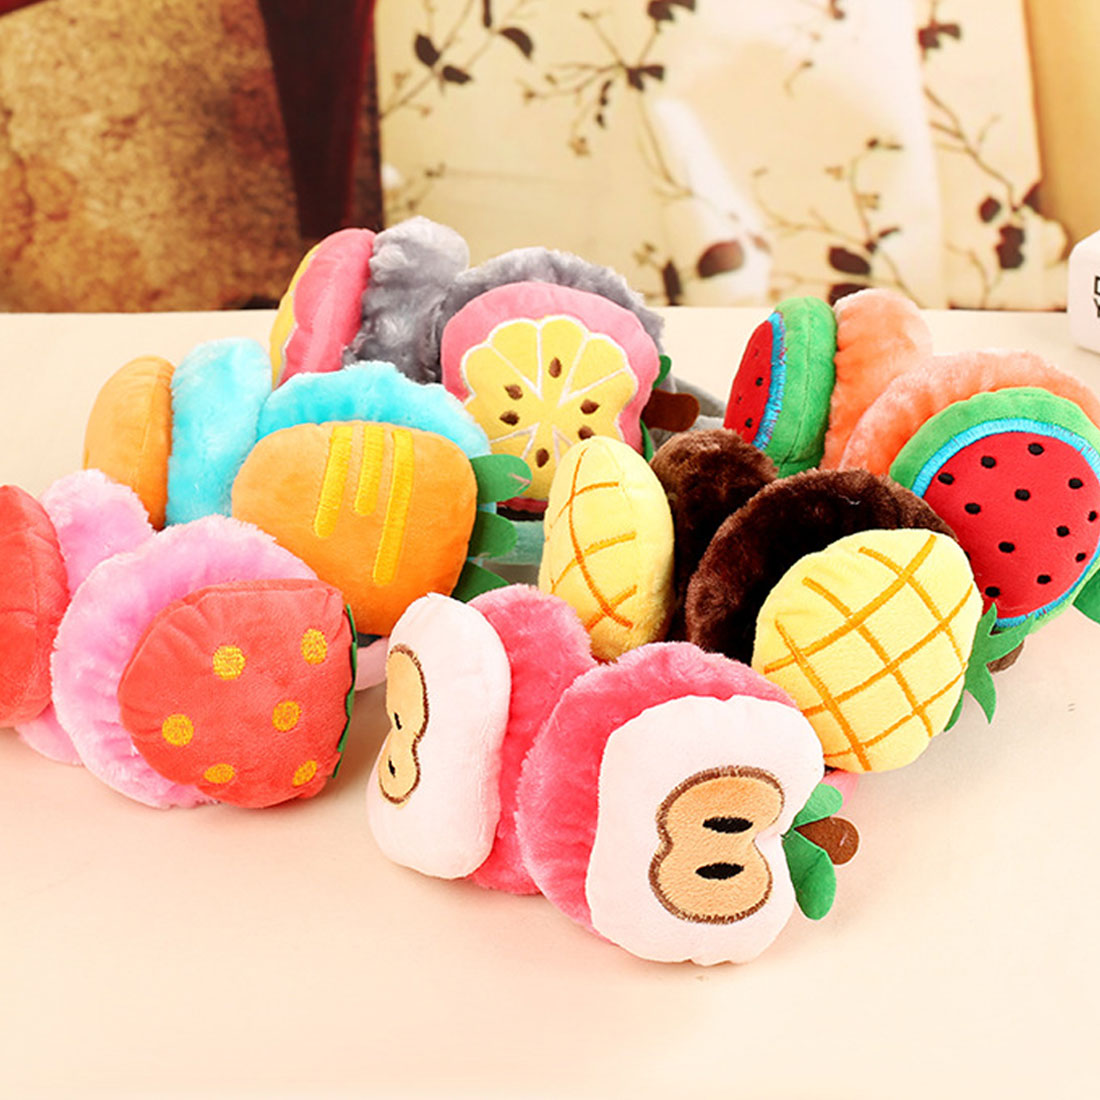 Charming Winter Warm Lovely Cartoon Plush Children Earmuffs Ear Fruit Series Watermelon Strawberry Thick Boys Girls Ear Muffs